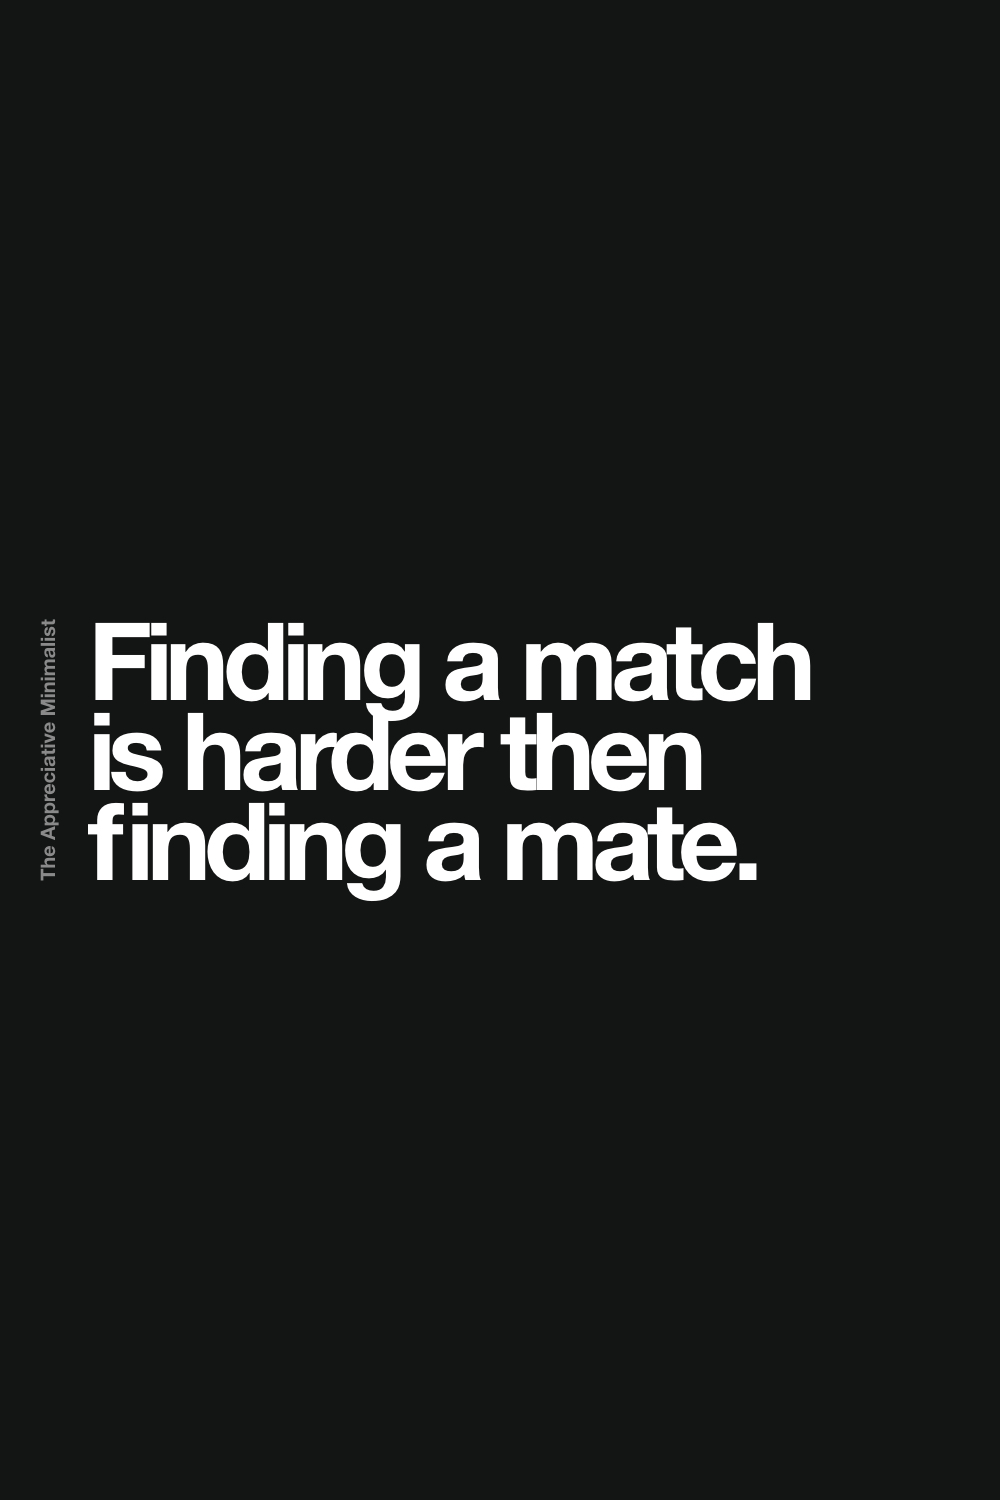 Finding a match is harder then finding a mate.